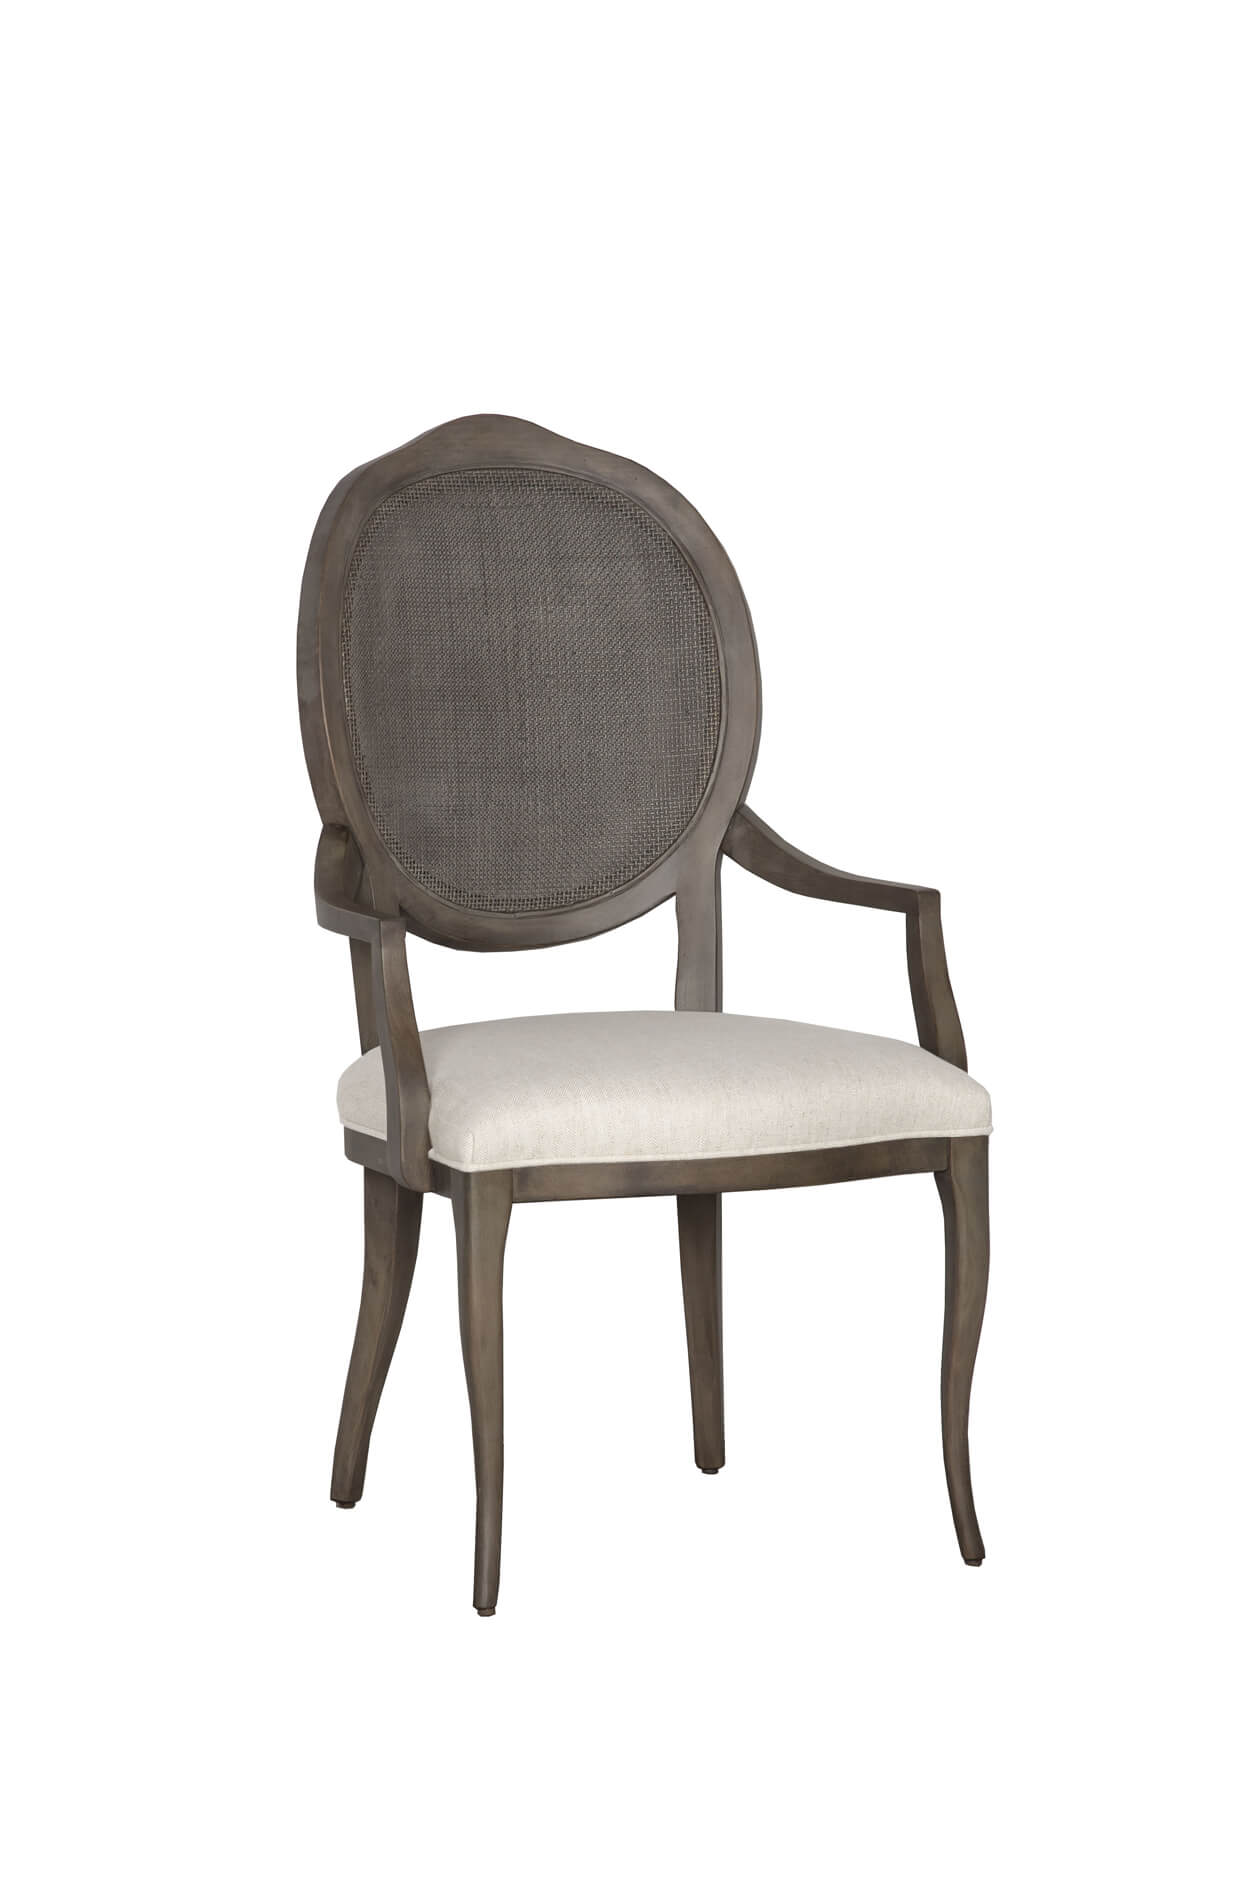 Fairfield's Ava Upholstered Dining Arm Chair